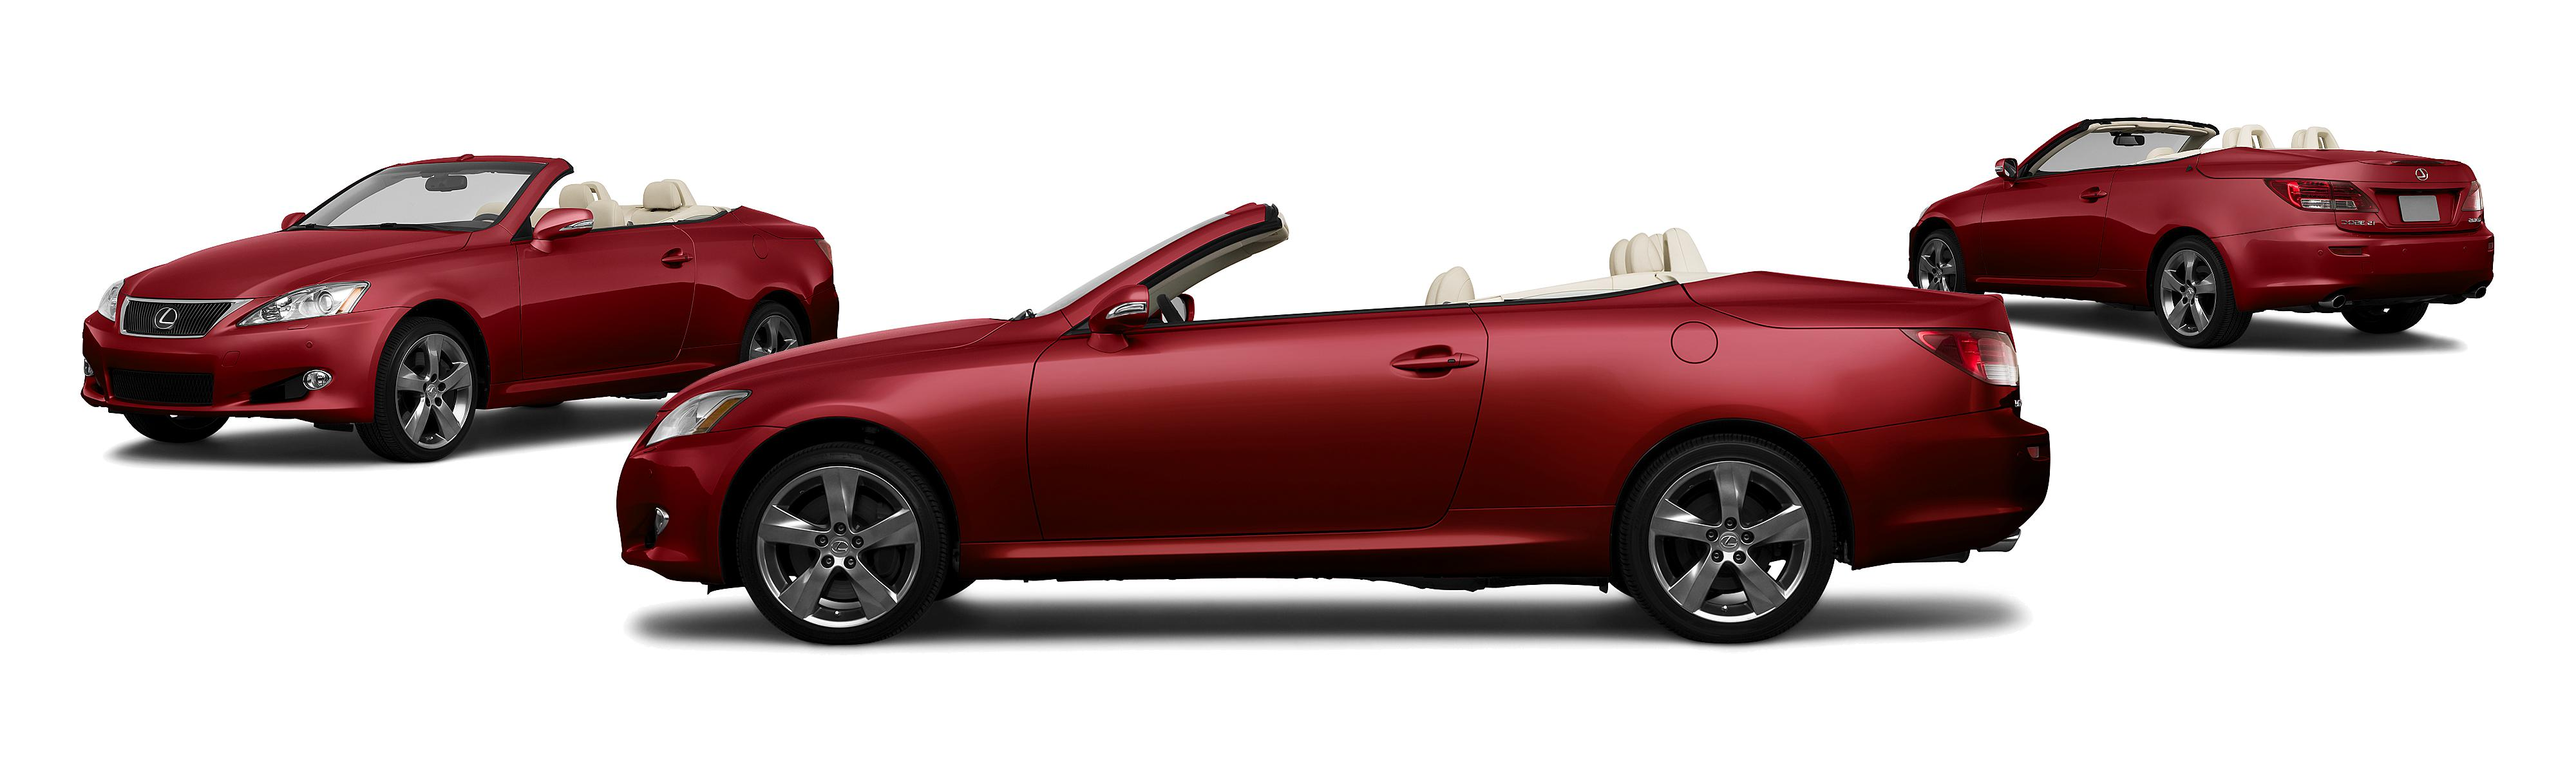 2010 Lexus IS 350C 2dr Convertible - Research - GrooveCar